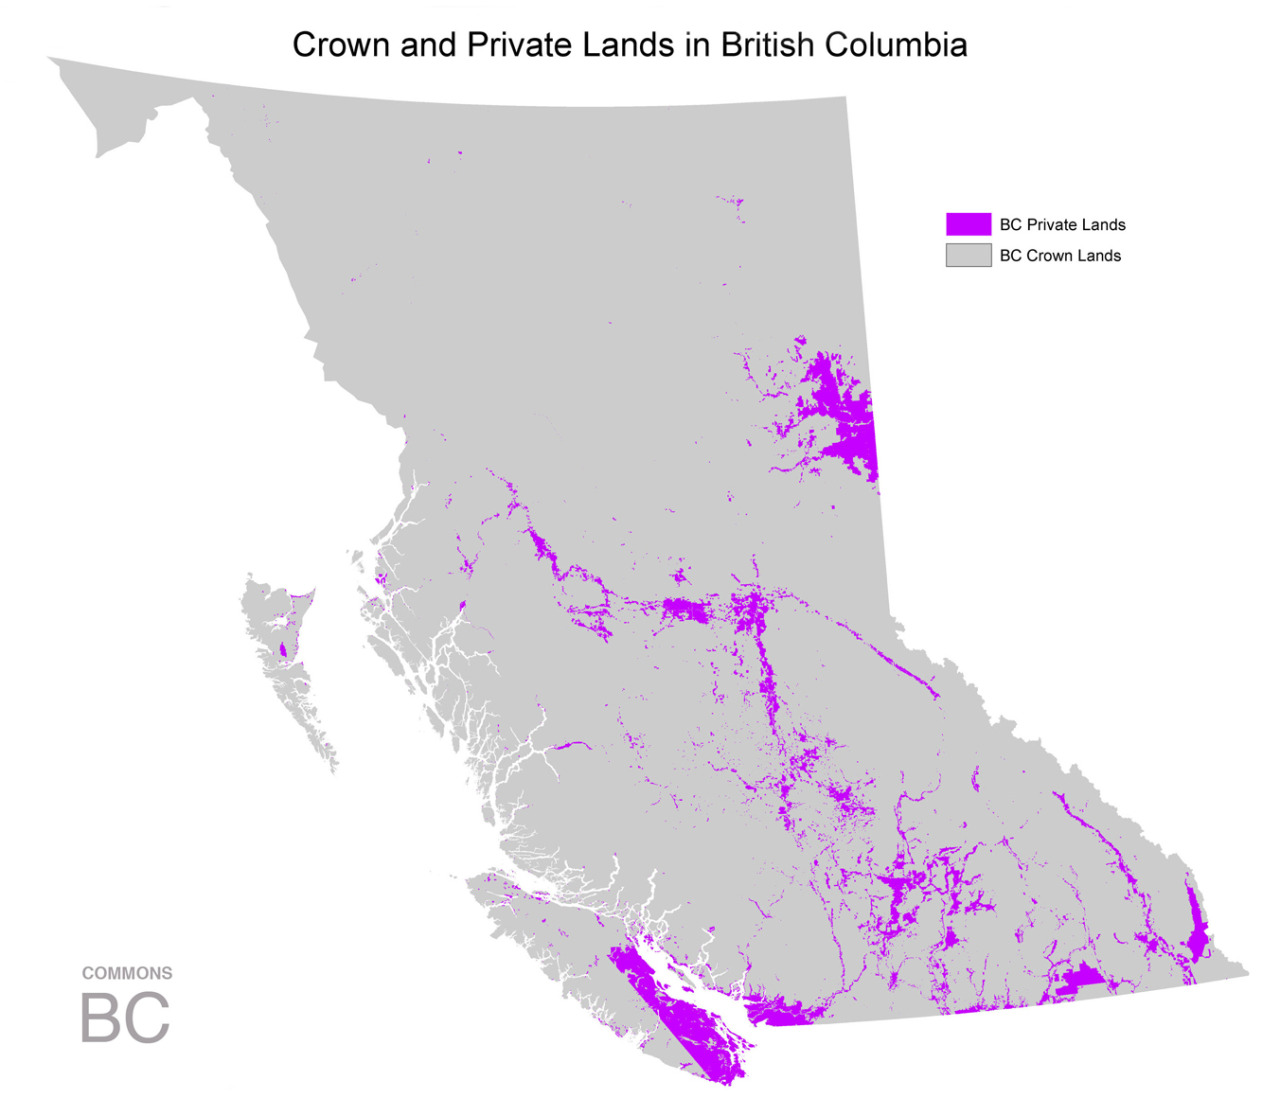 Crown and Private Lands in British Columbia